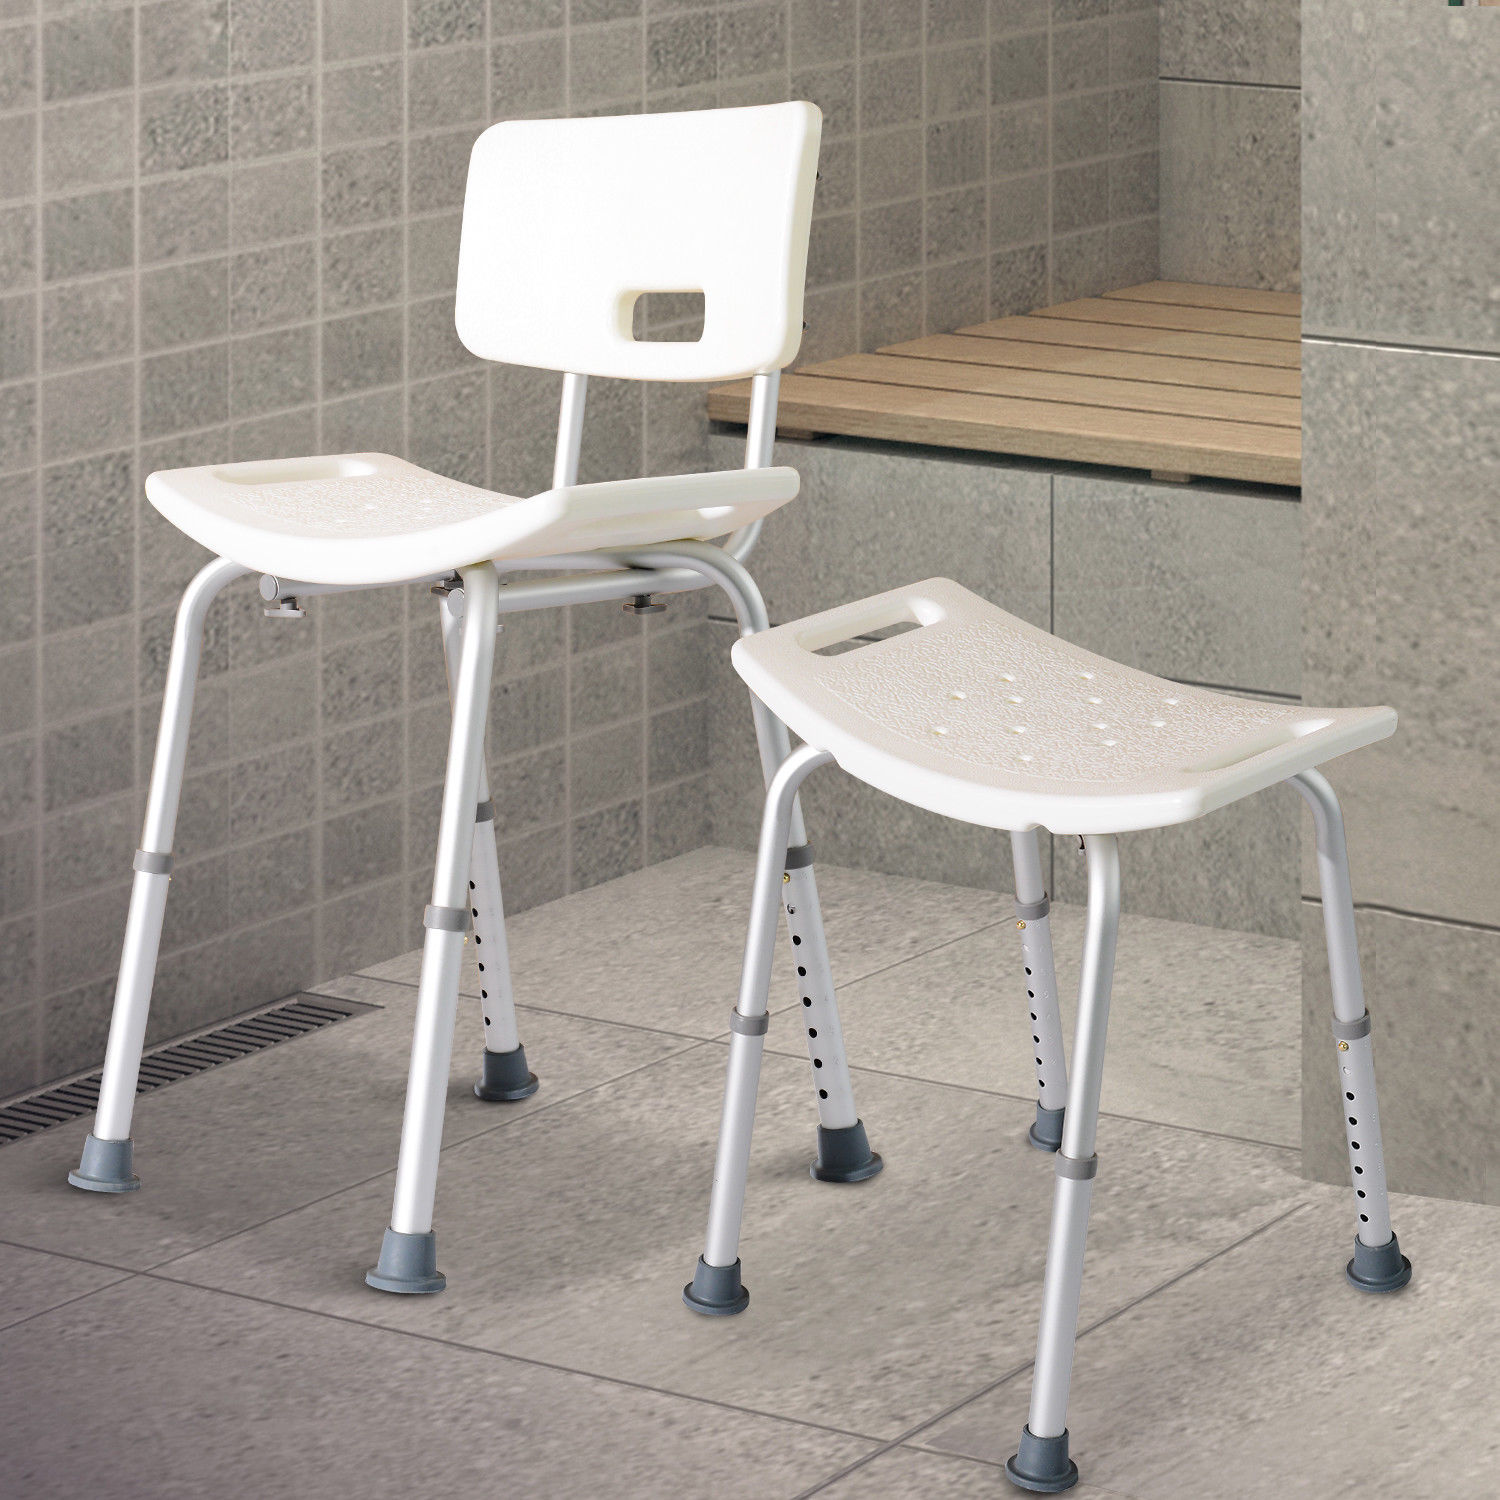 Color : B Beauty Shower Chair with Safety Backrest Height Adjustable Portable Medical Stool Non-Slip Bath Chair Bath Bench for The Disabled